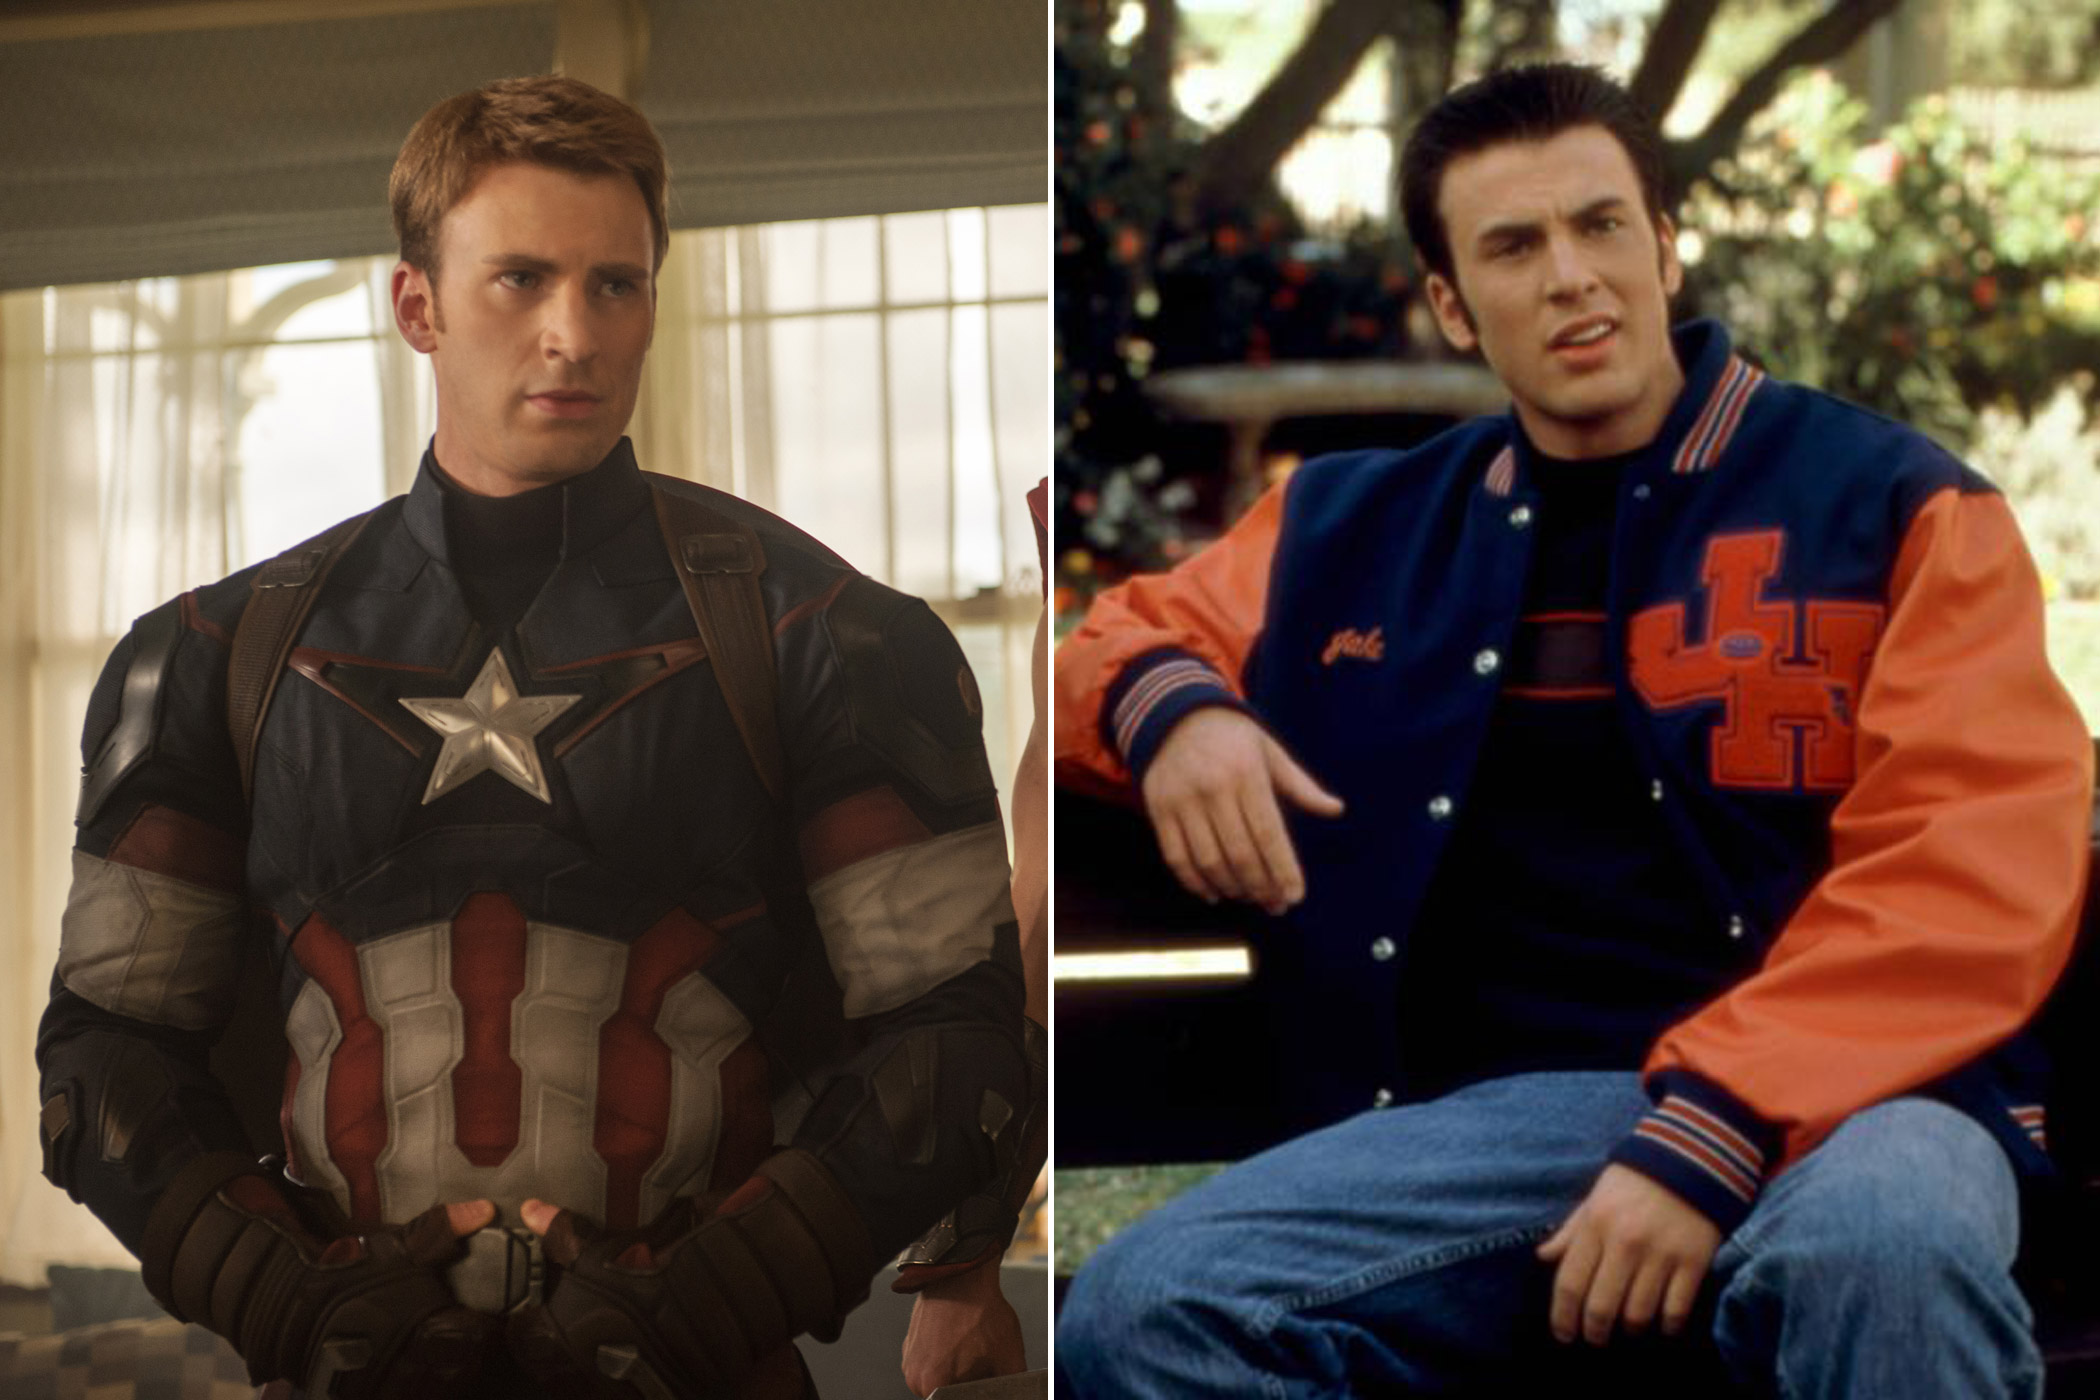 Chris Evans as Steve Rogers/Captain America in <i>The Avengers: Age of Ultron</i> and Jake Wyler in <i>Not Another Teen Movie</i>